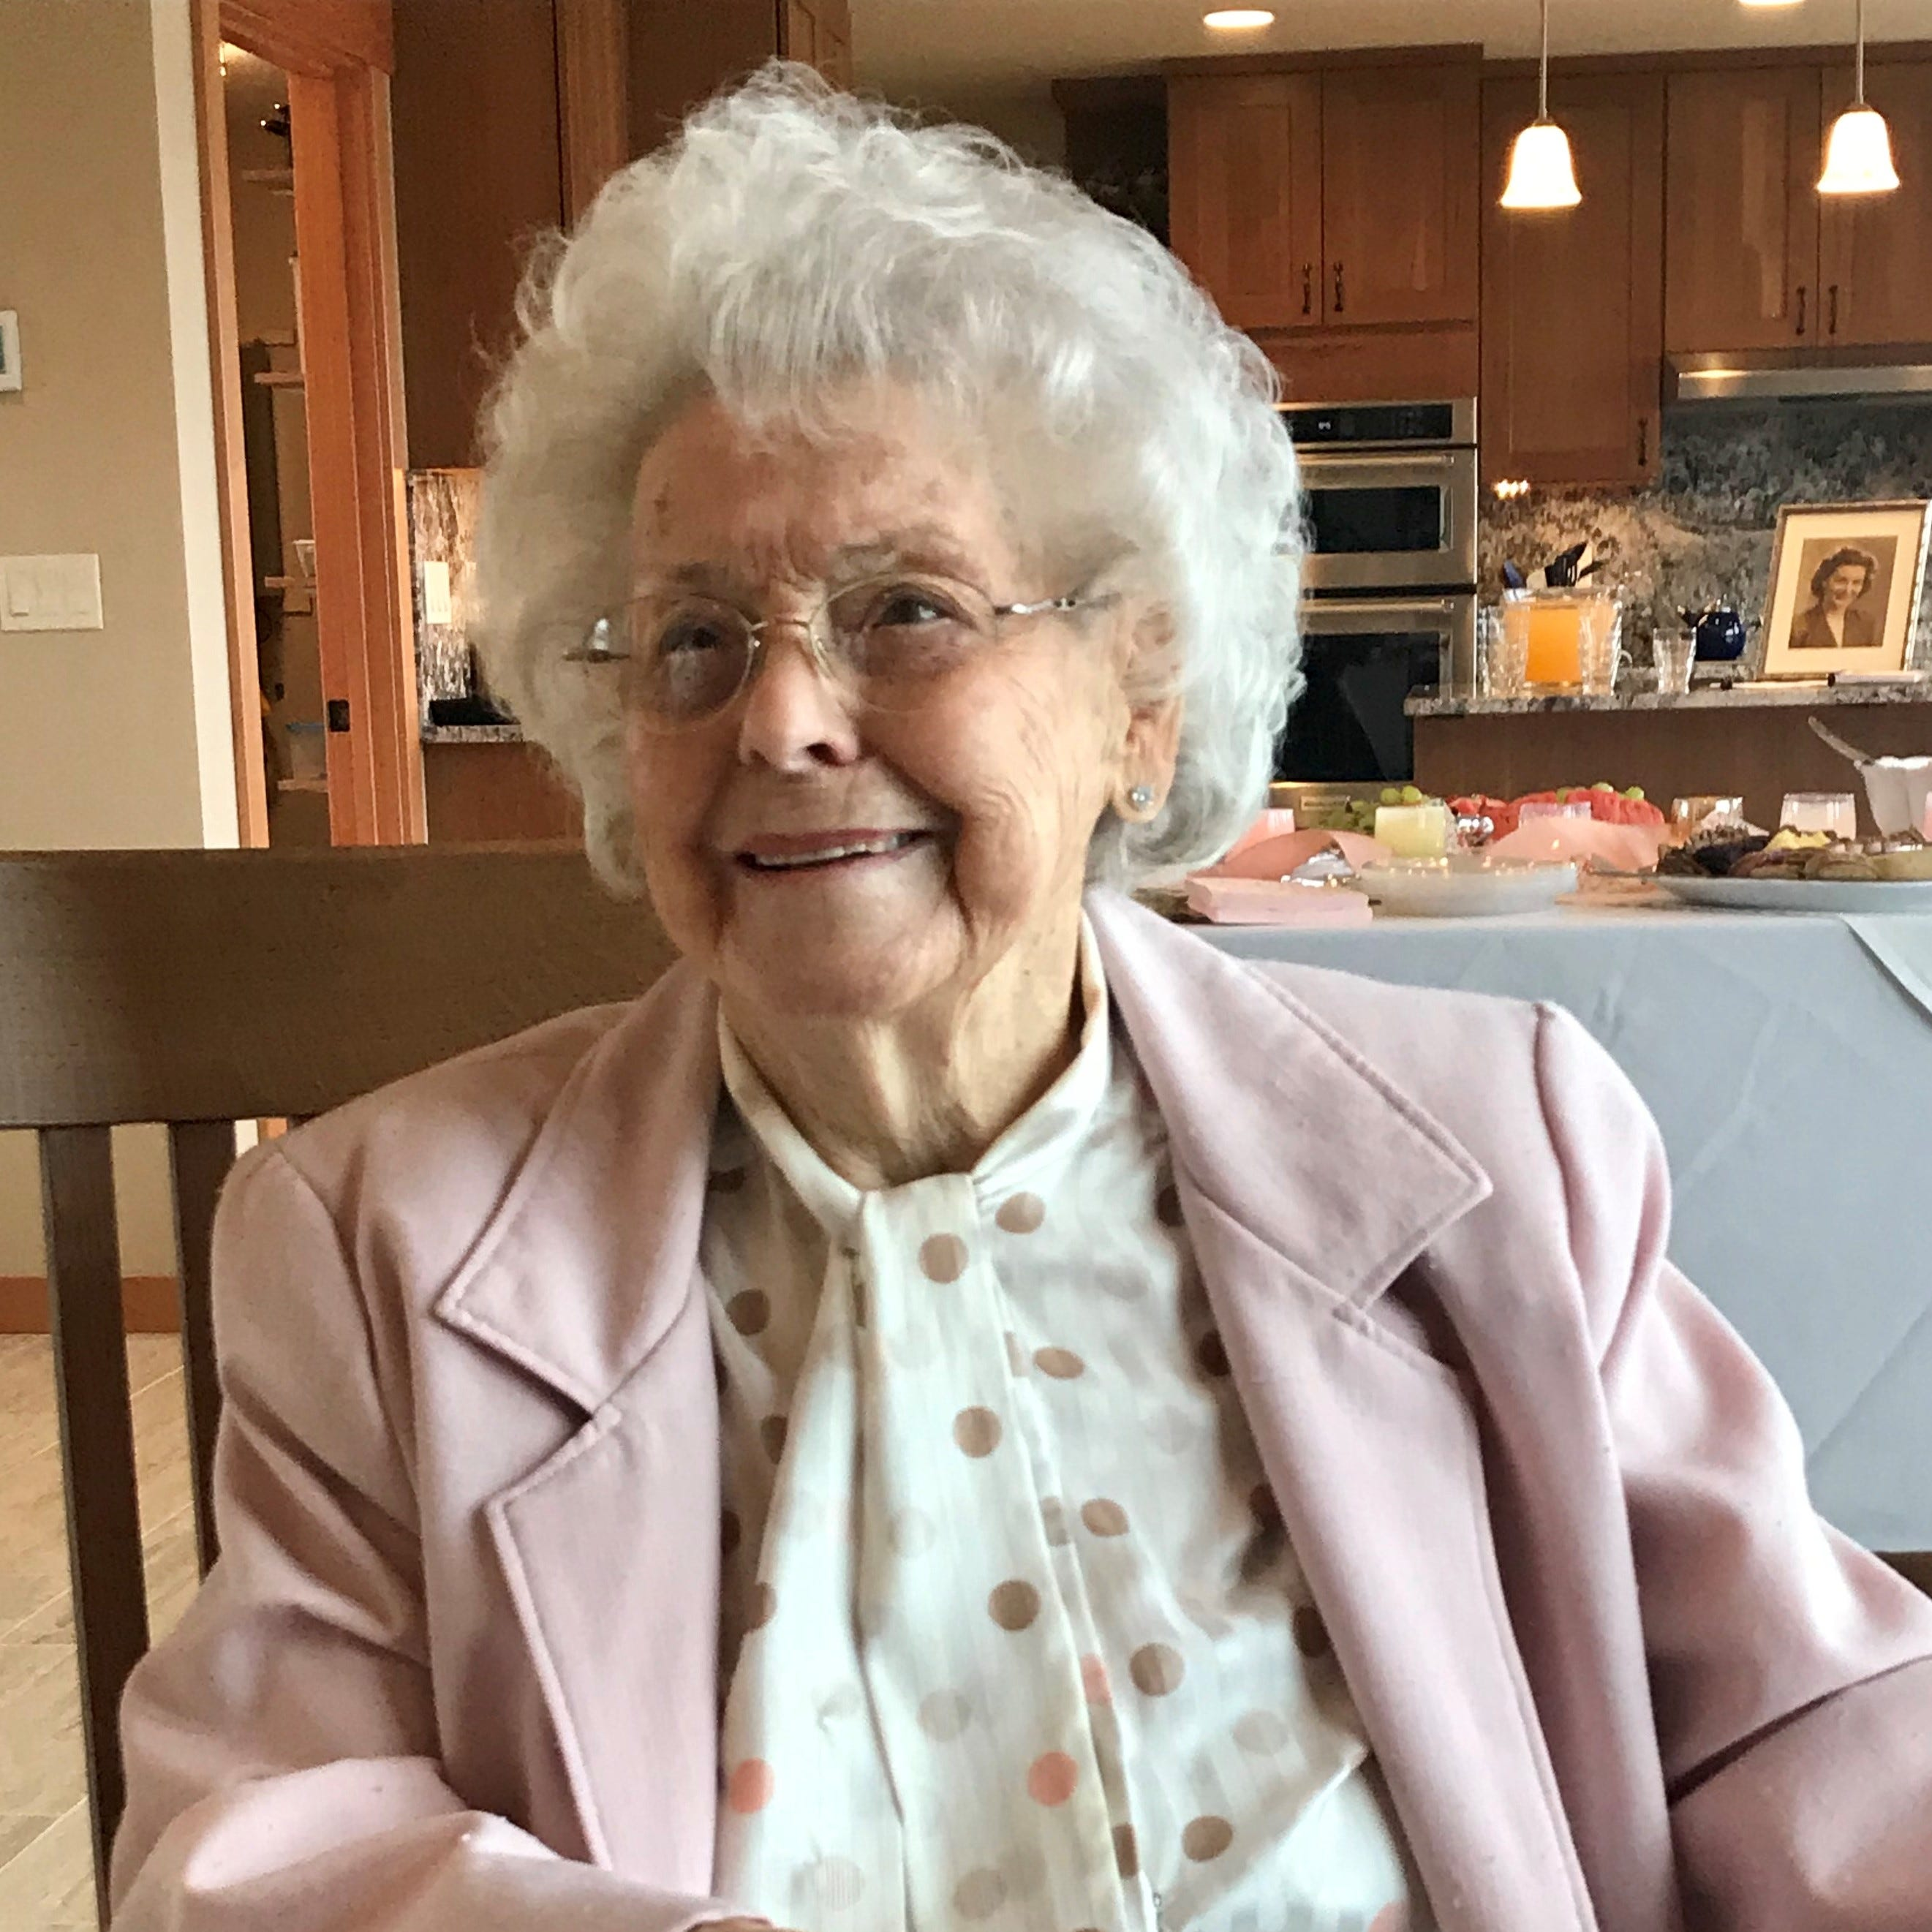 100th birthday: Rosalie (Bly) Miller